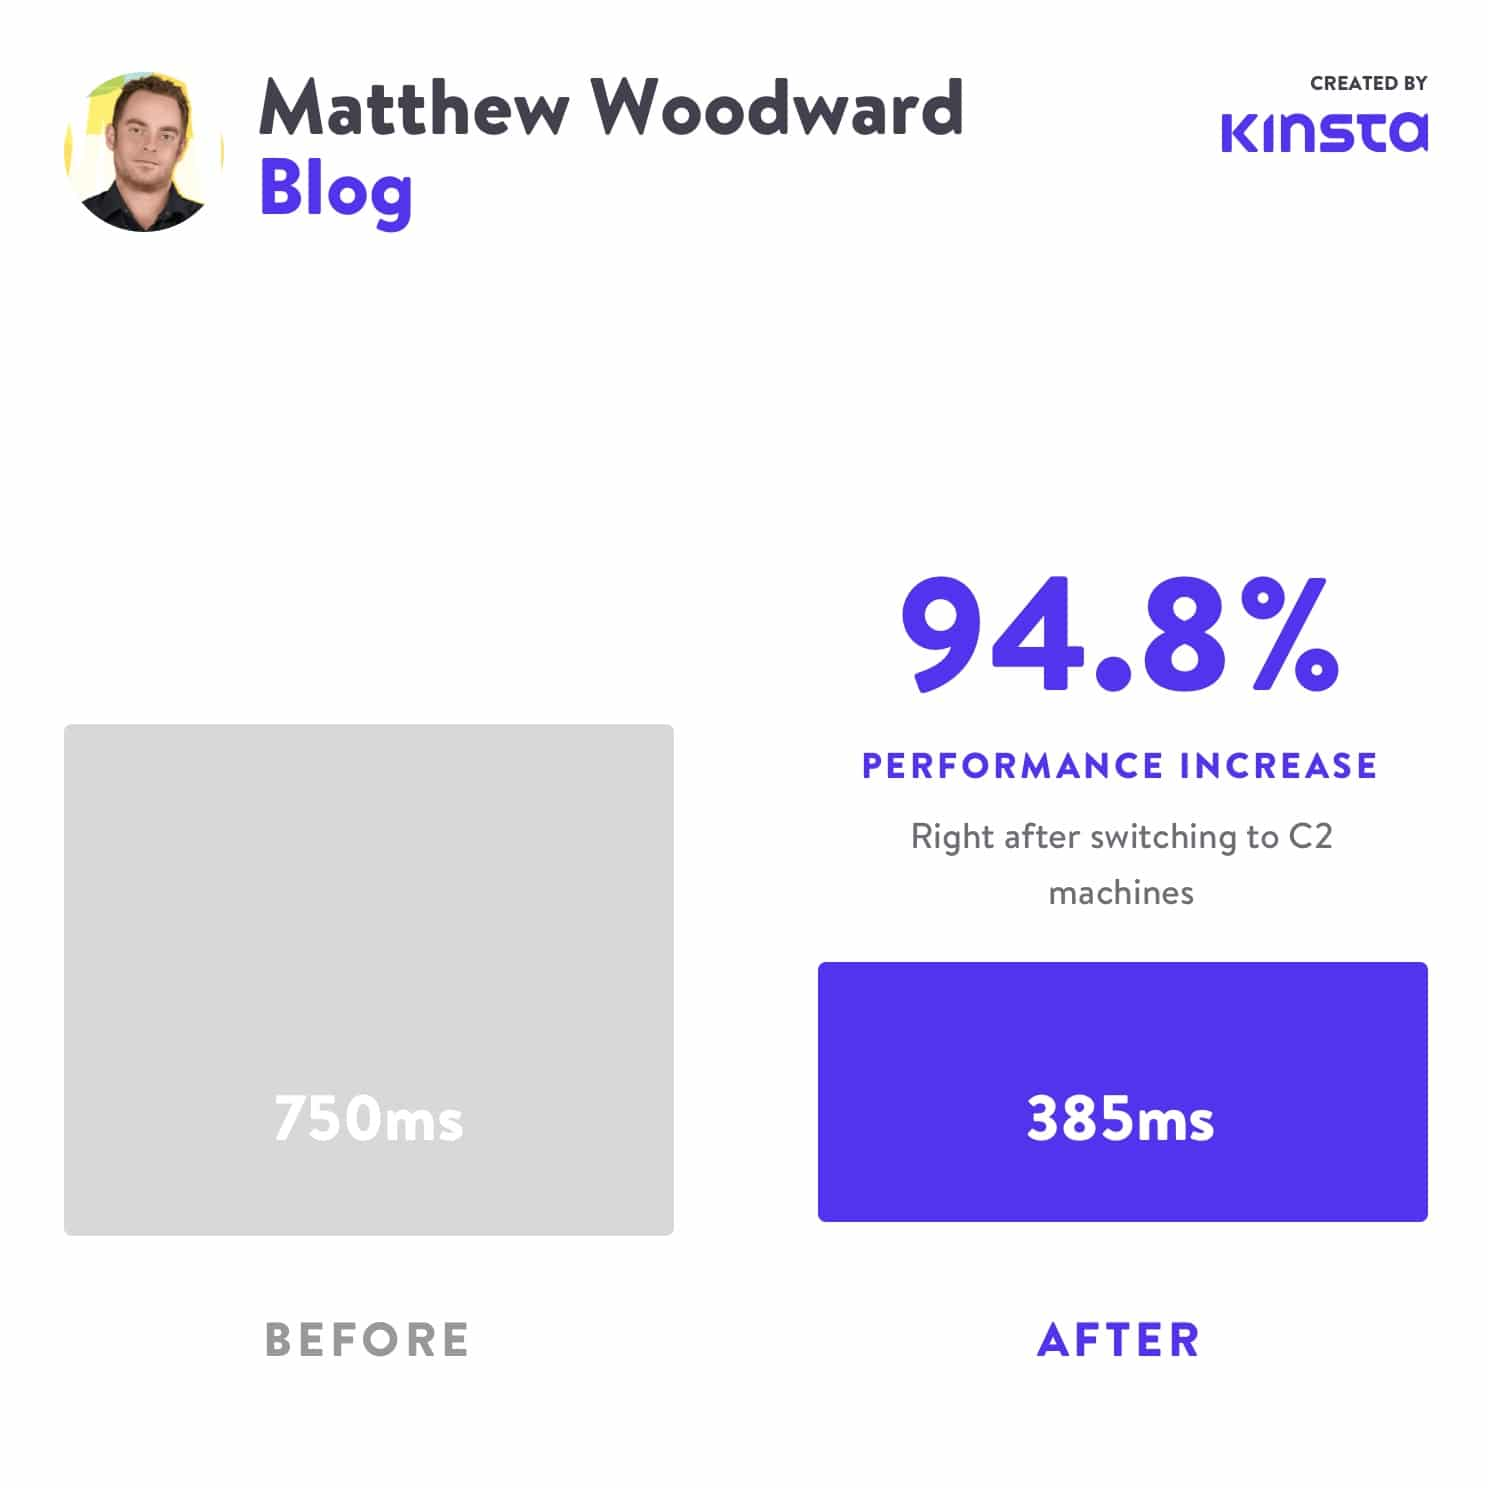 Matthew Woodward saw a 94.8% performance increase after moving to C2.